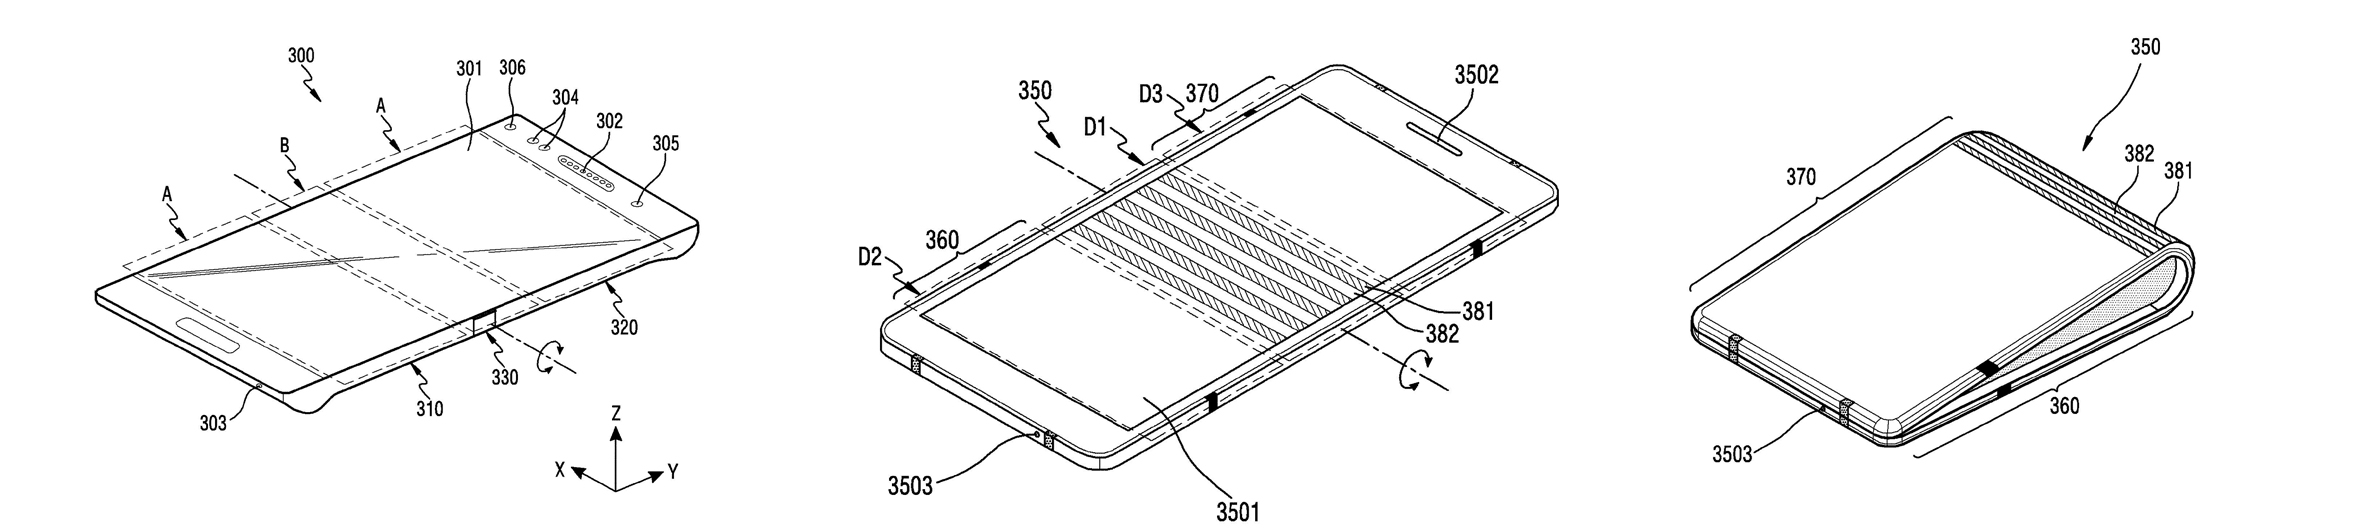 Samsung foldable device WO2017135651